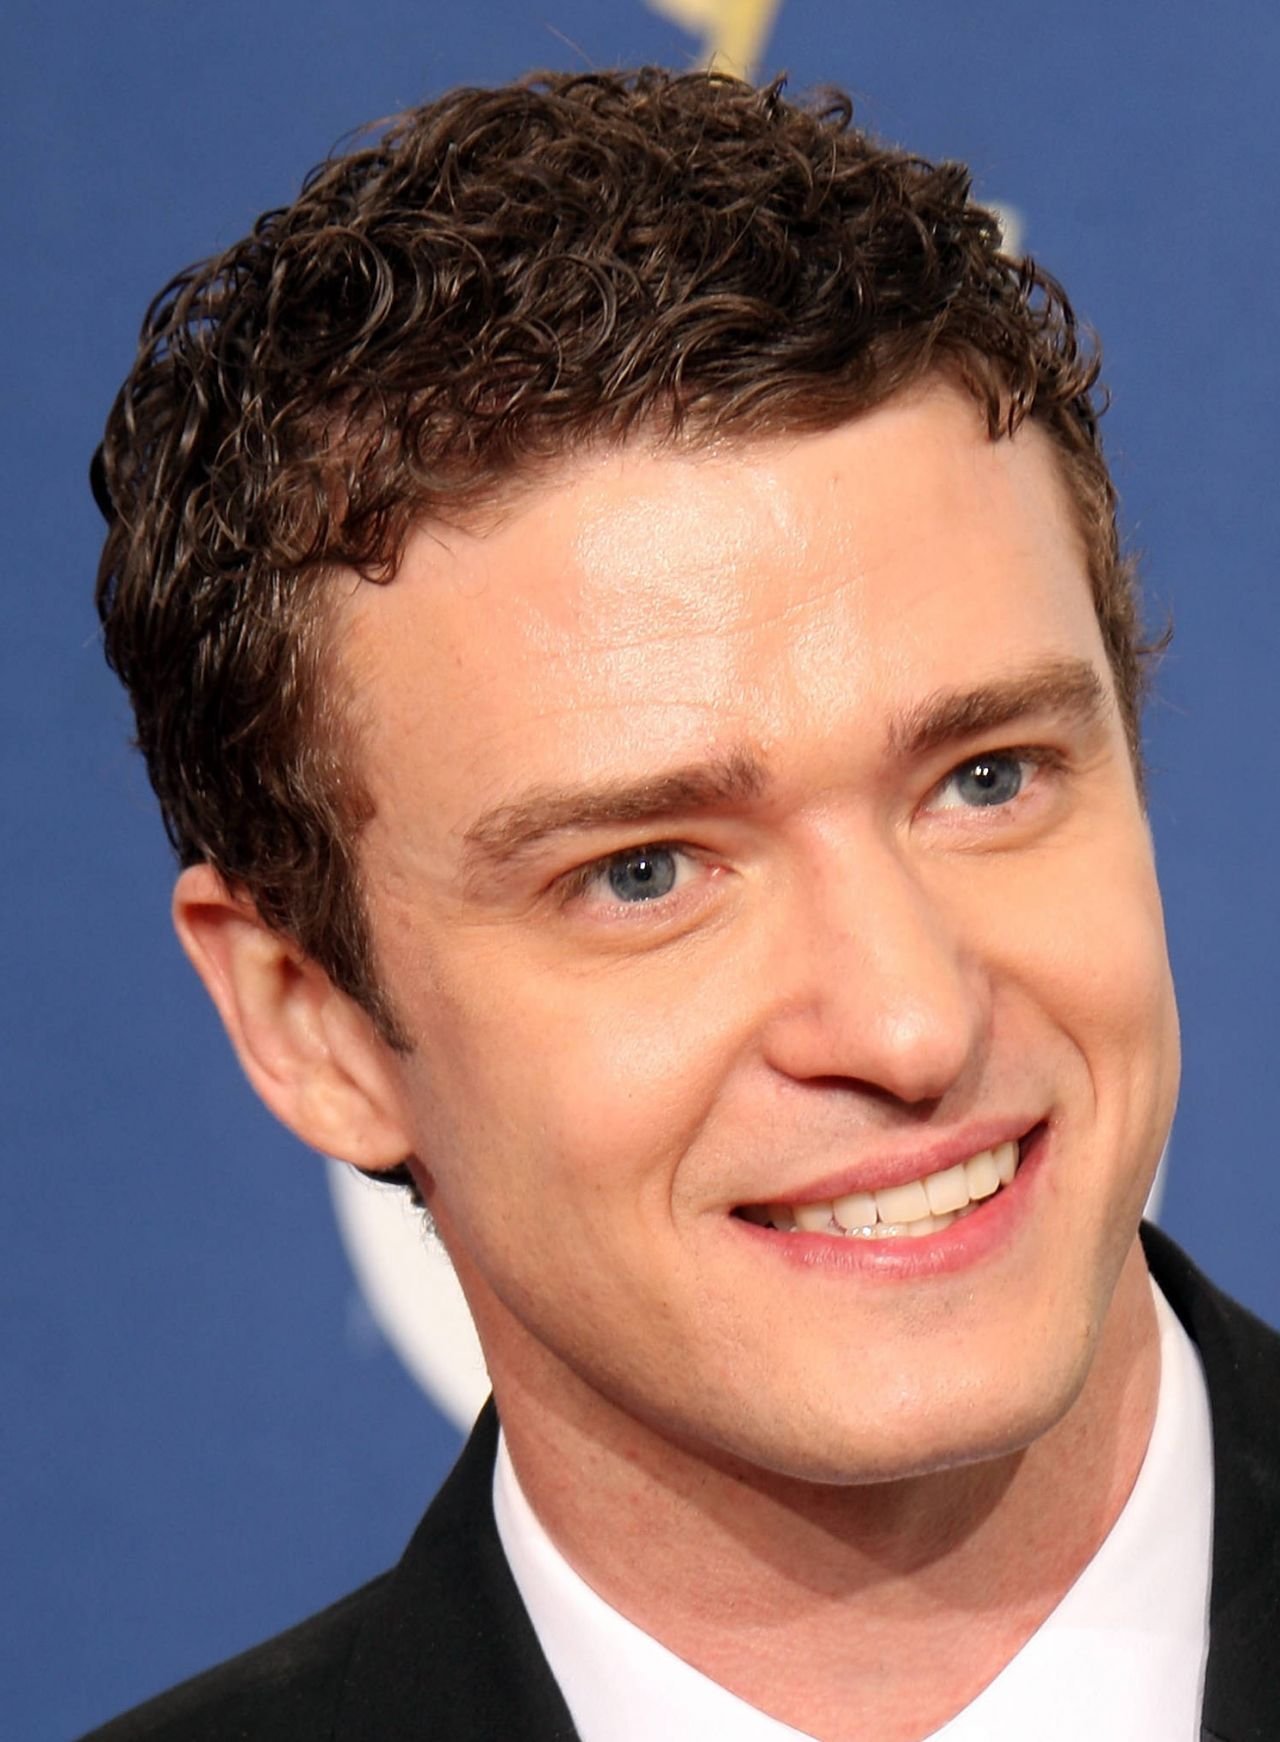 formal curly hairstyle for men - Google Search (With images) | Curly hair men, Mens hairstyles ...